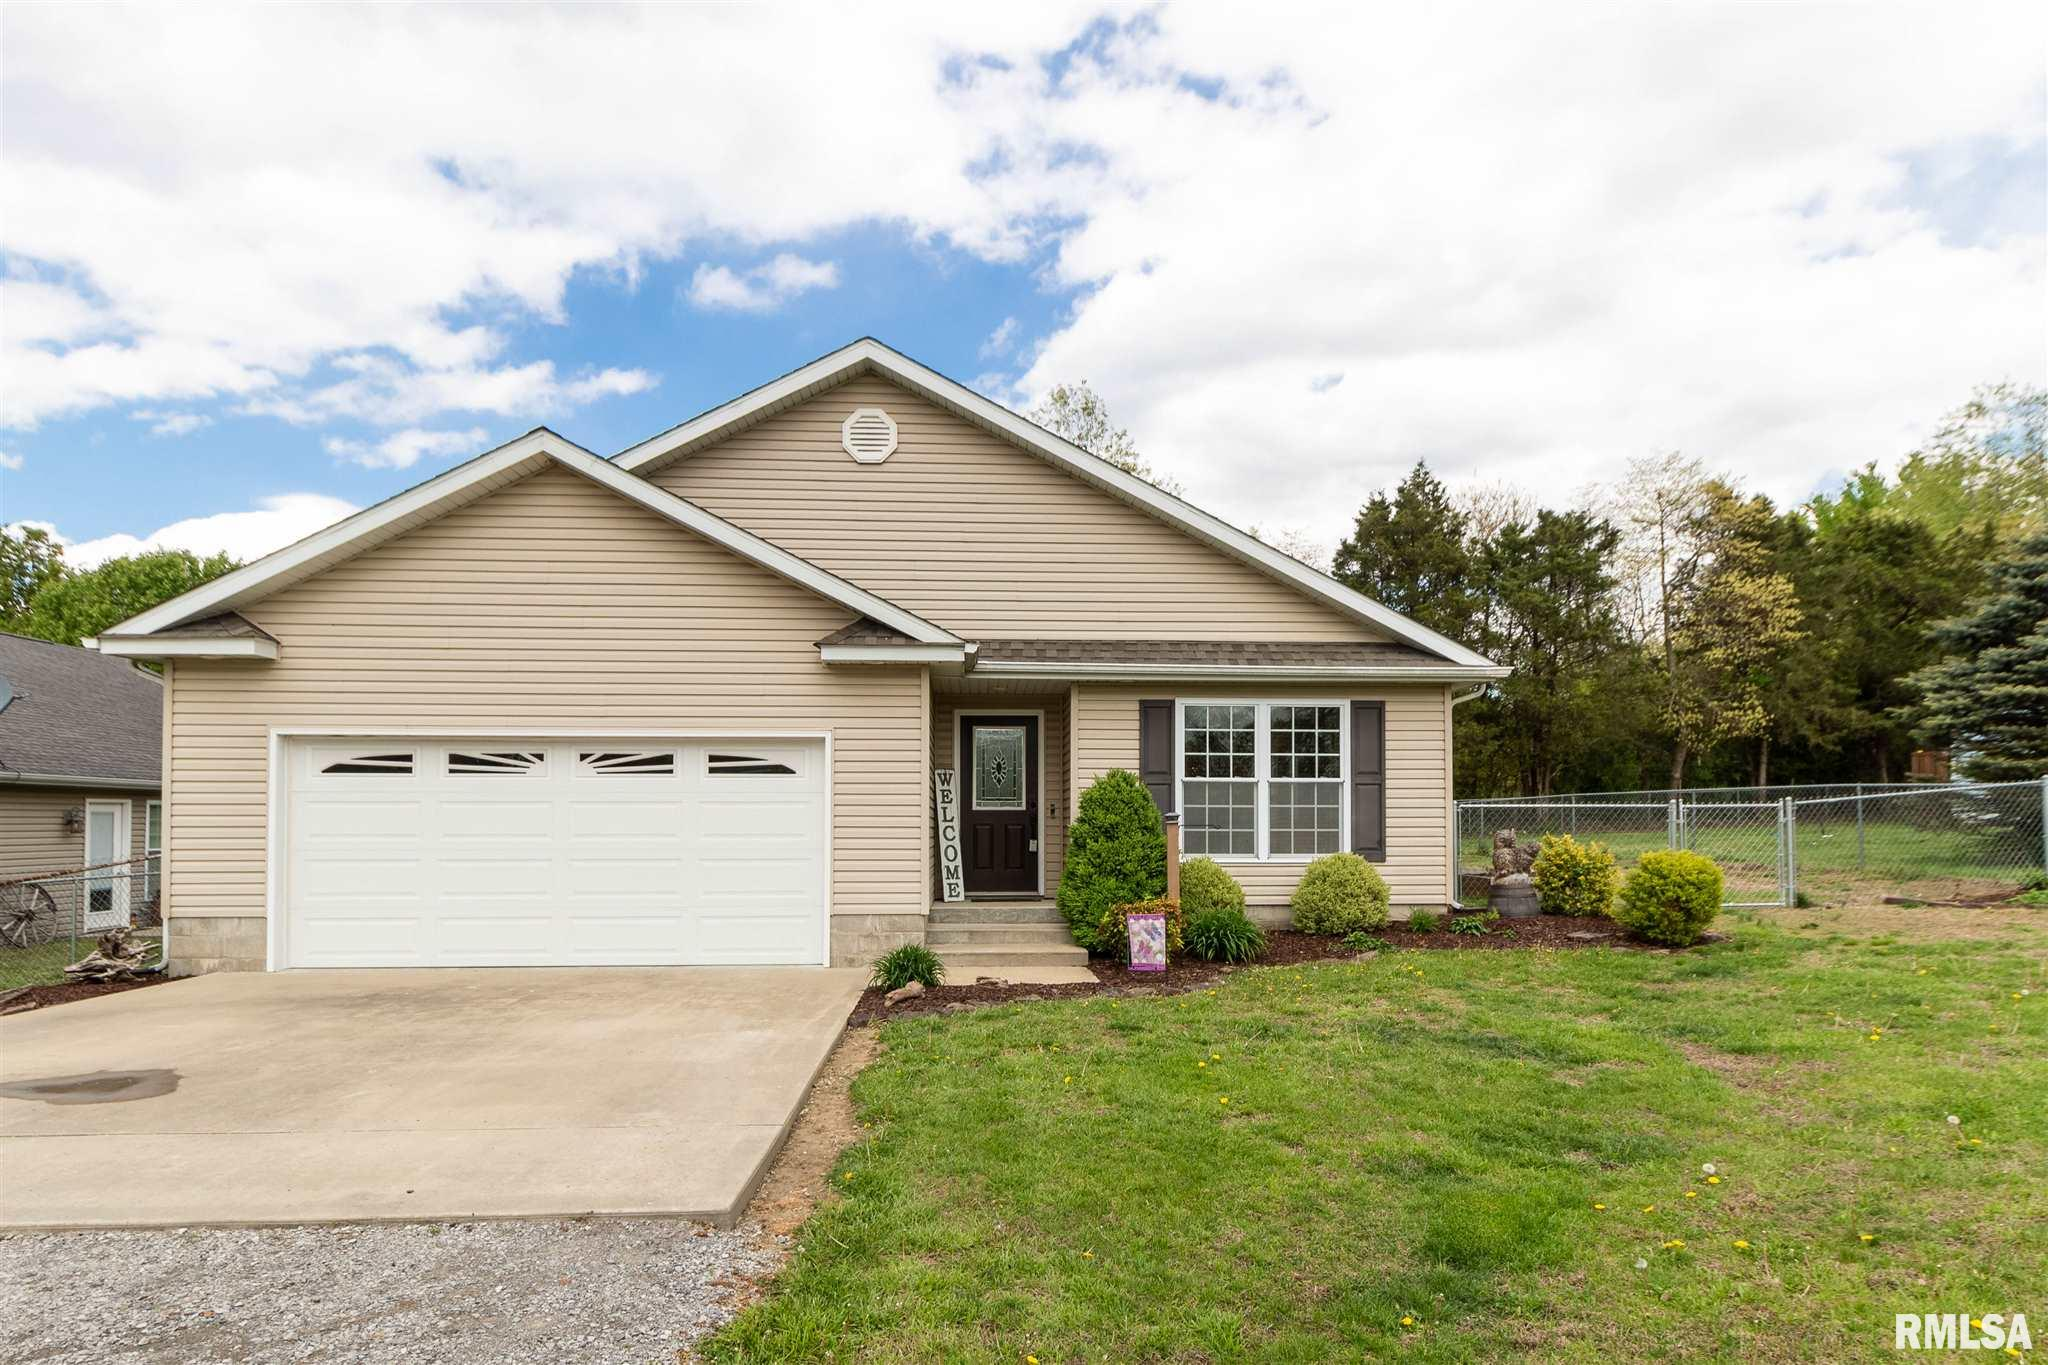 703B MULBERRY Property Photo - Goreville, IL real estate listing